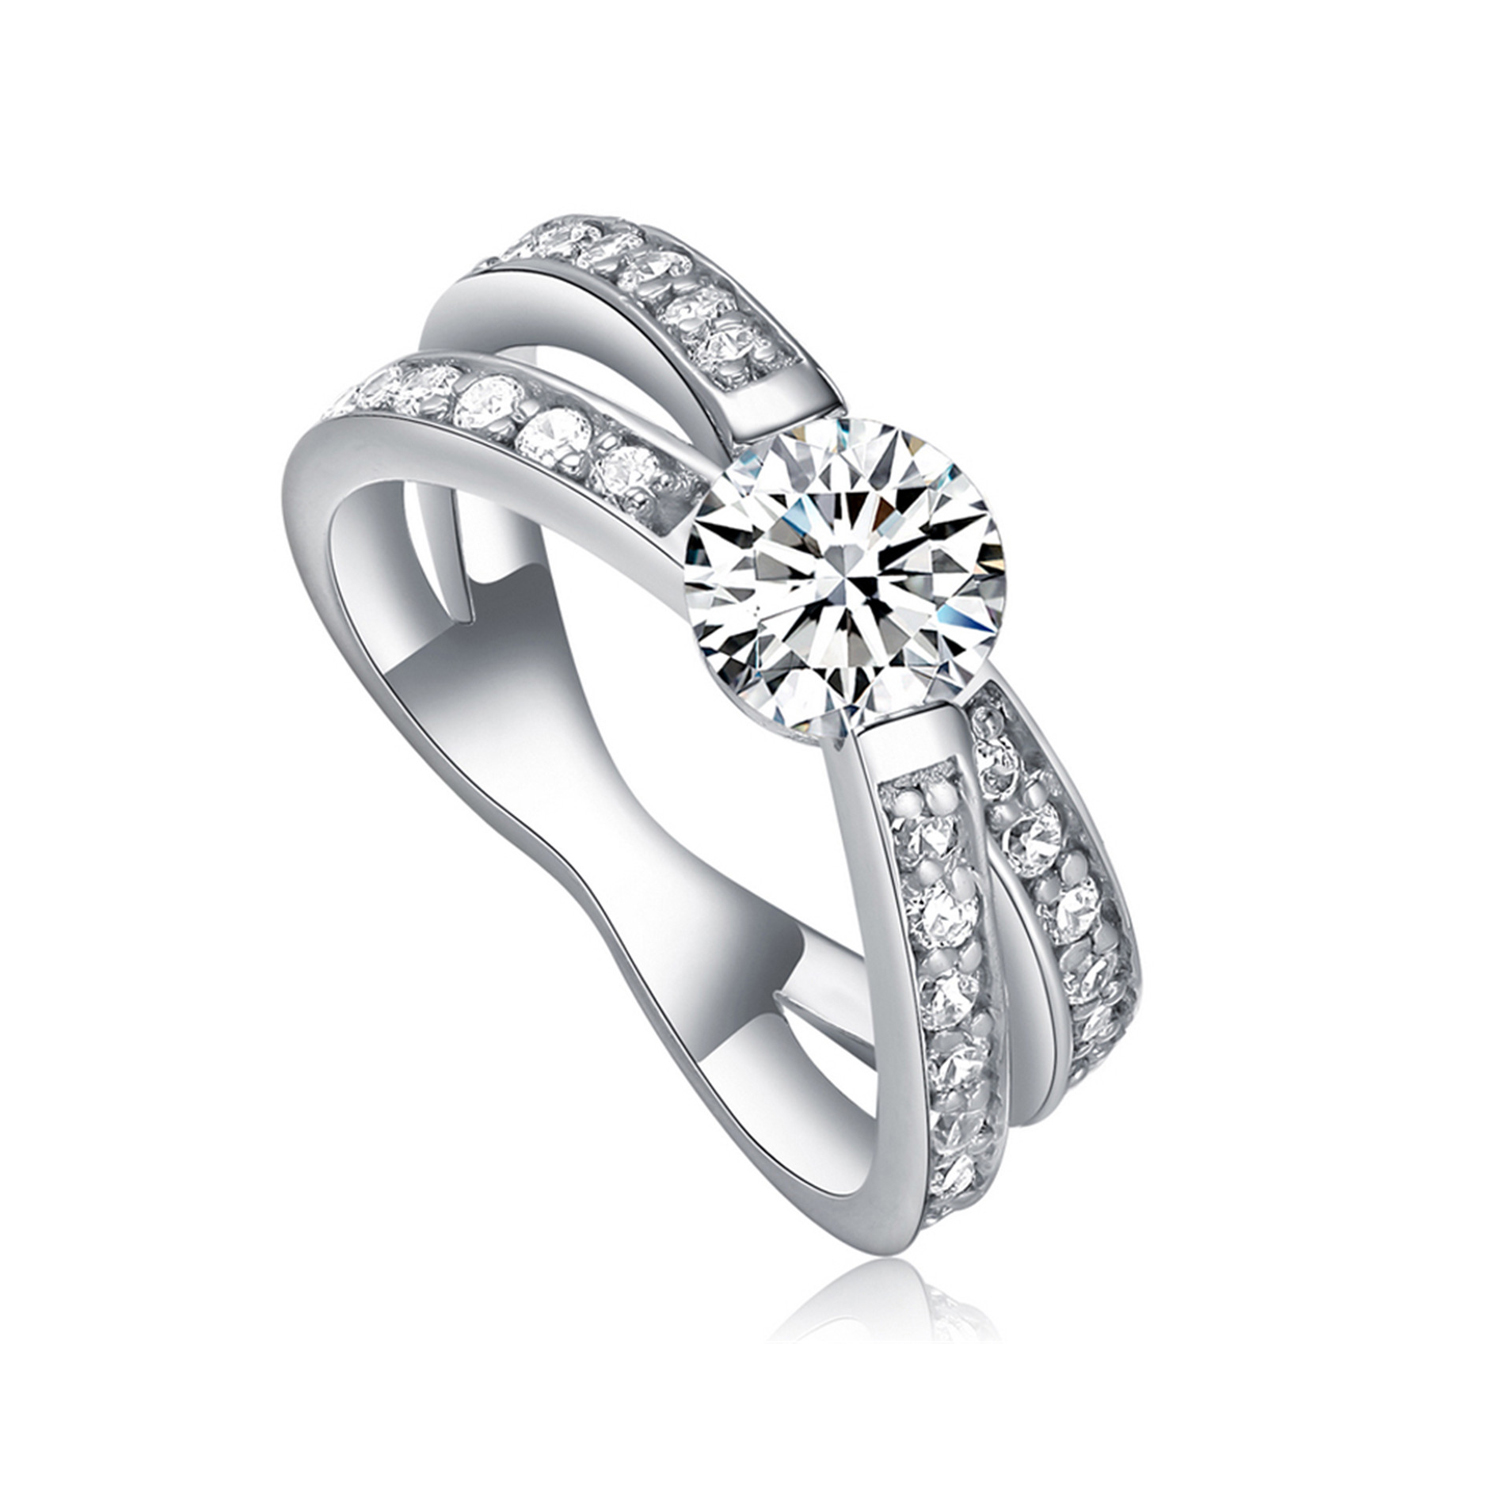 Jewelry Manufacturer wedding engagement rings  Sterling Silver Round Ring Set (图1)